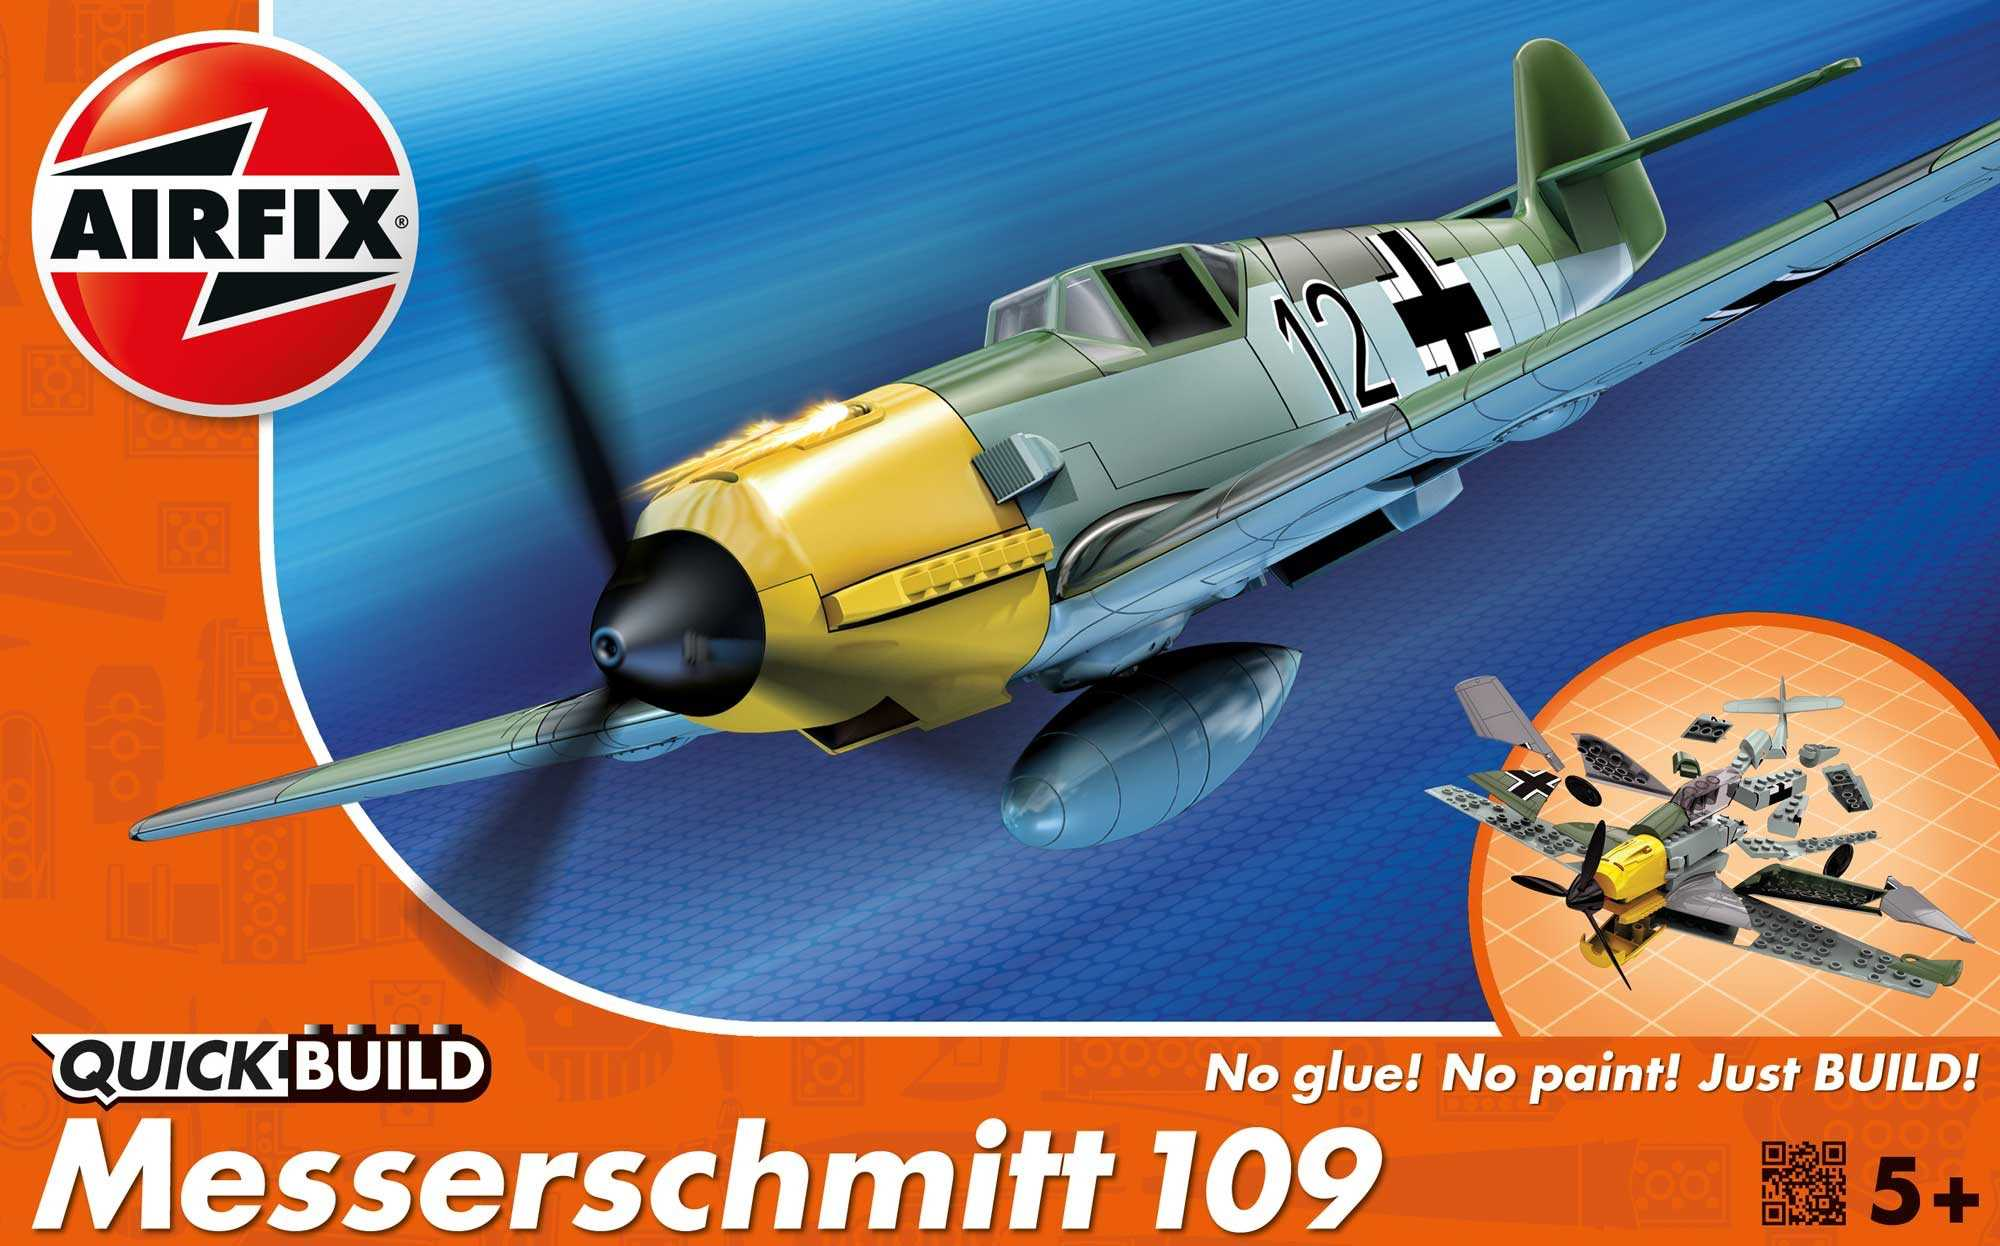 QUICK BUILD Messerschmitt Bf 109